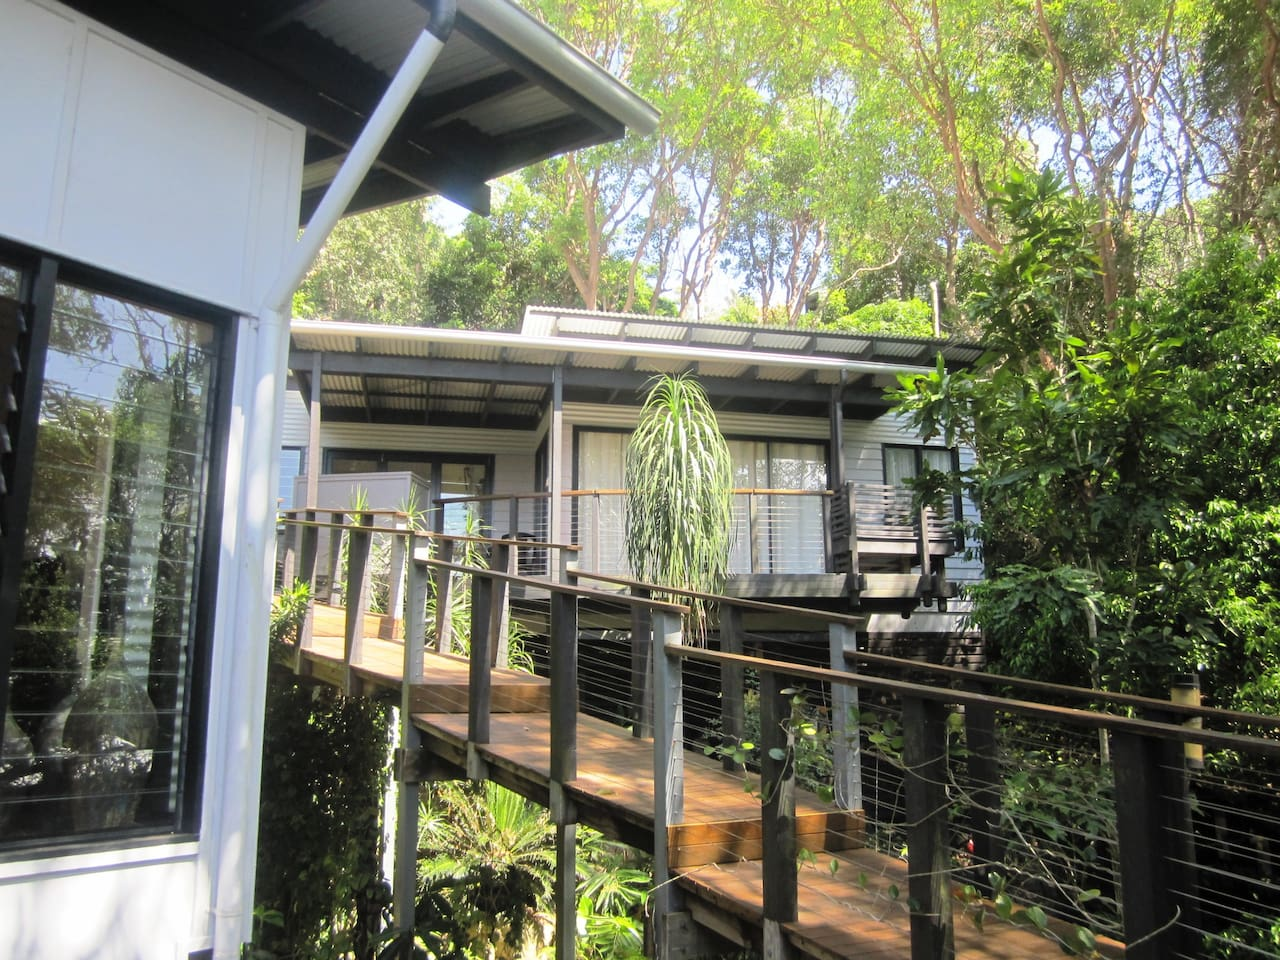 Bliss is a standalone guesthouse/studio offering complete privacy and only 5 mins from Coolum's famous bays, boardwalk and Coastal Pathway